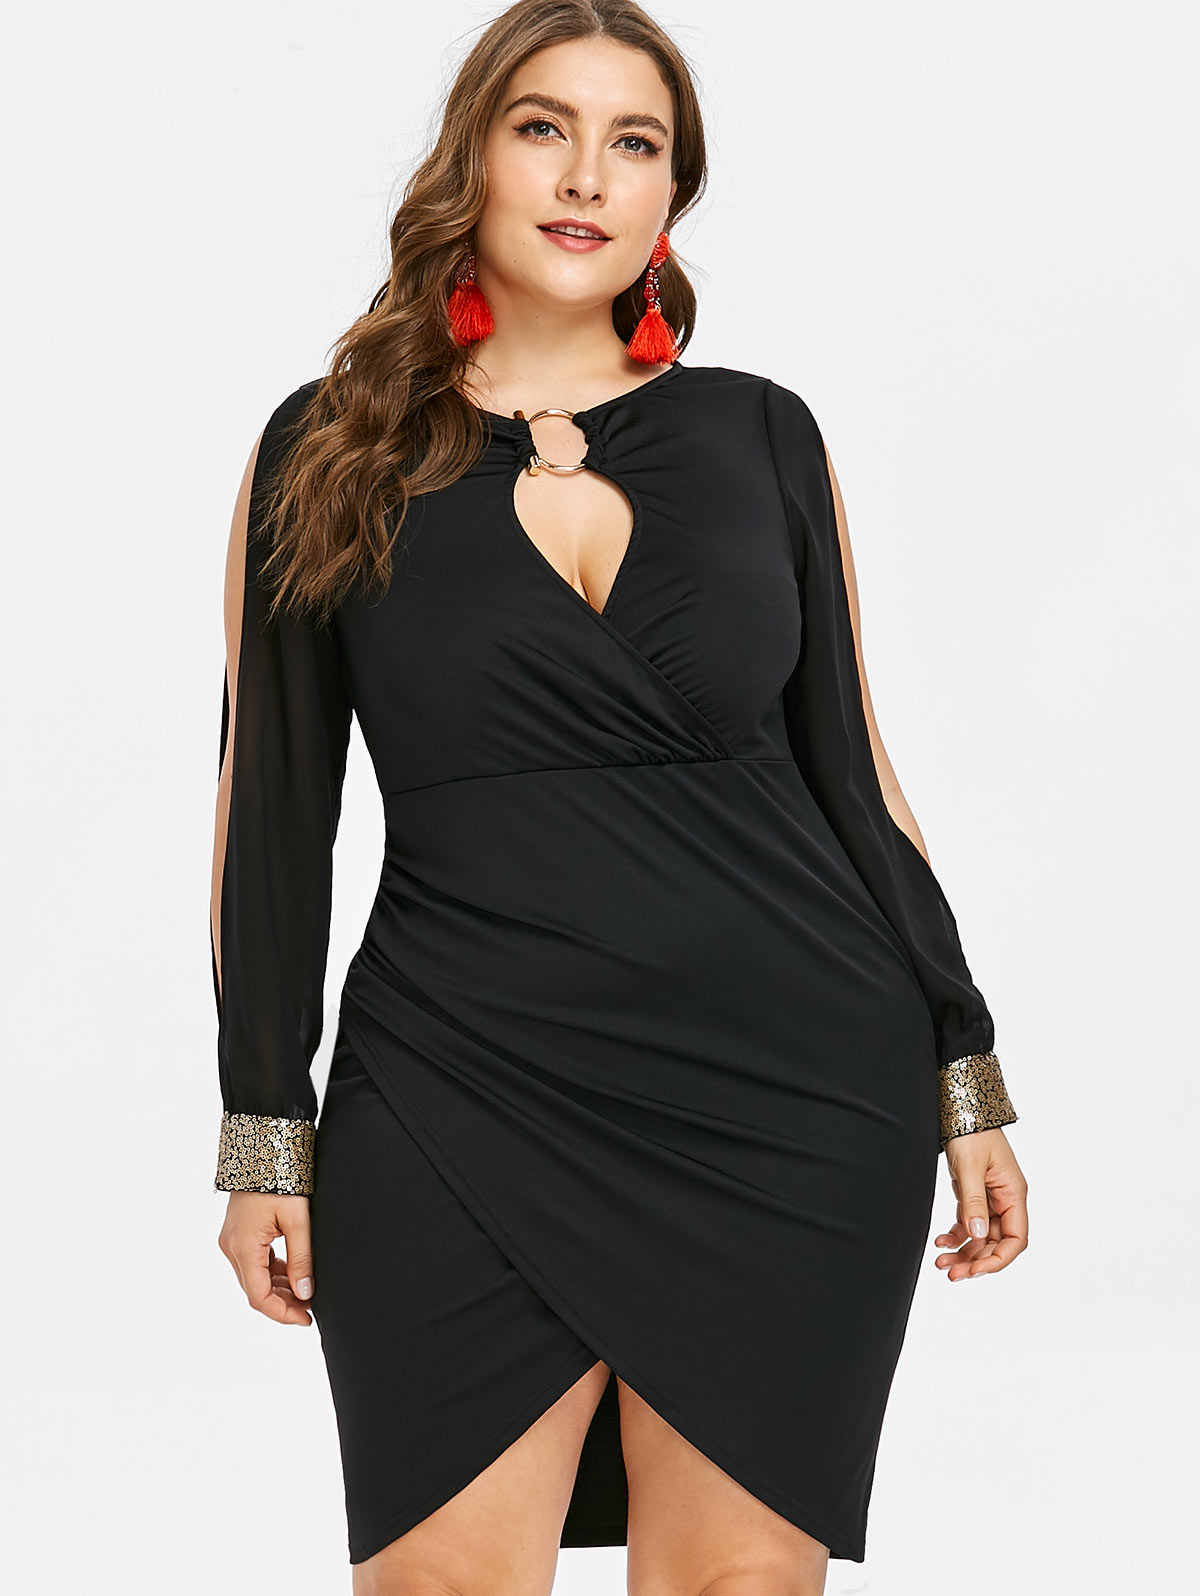 Wipalo Slit Sleeve Plus Size O-Ring Sequin Embellished Bodycon Dress  Elegant Solid Slip Front Mini Party Dress 5XL Fall Vestidos